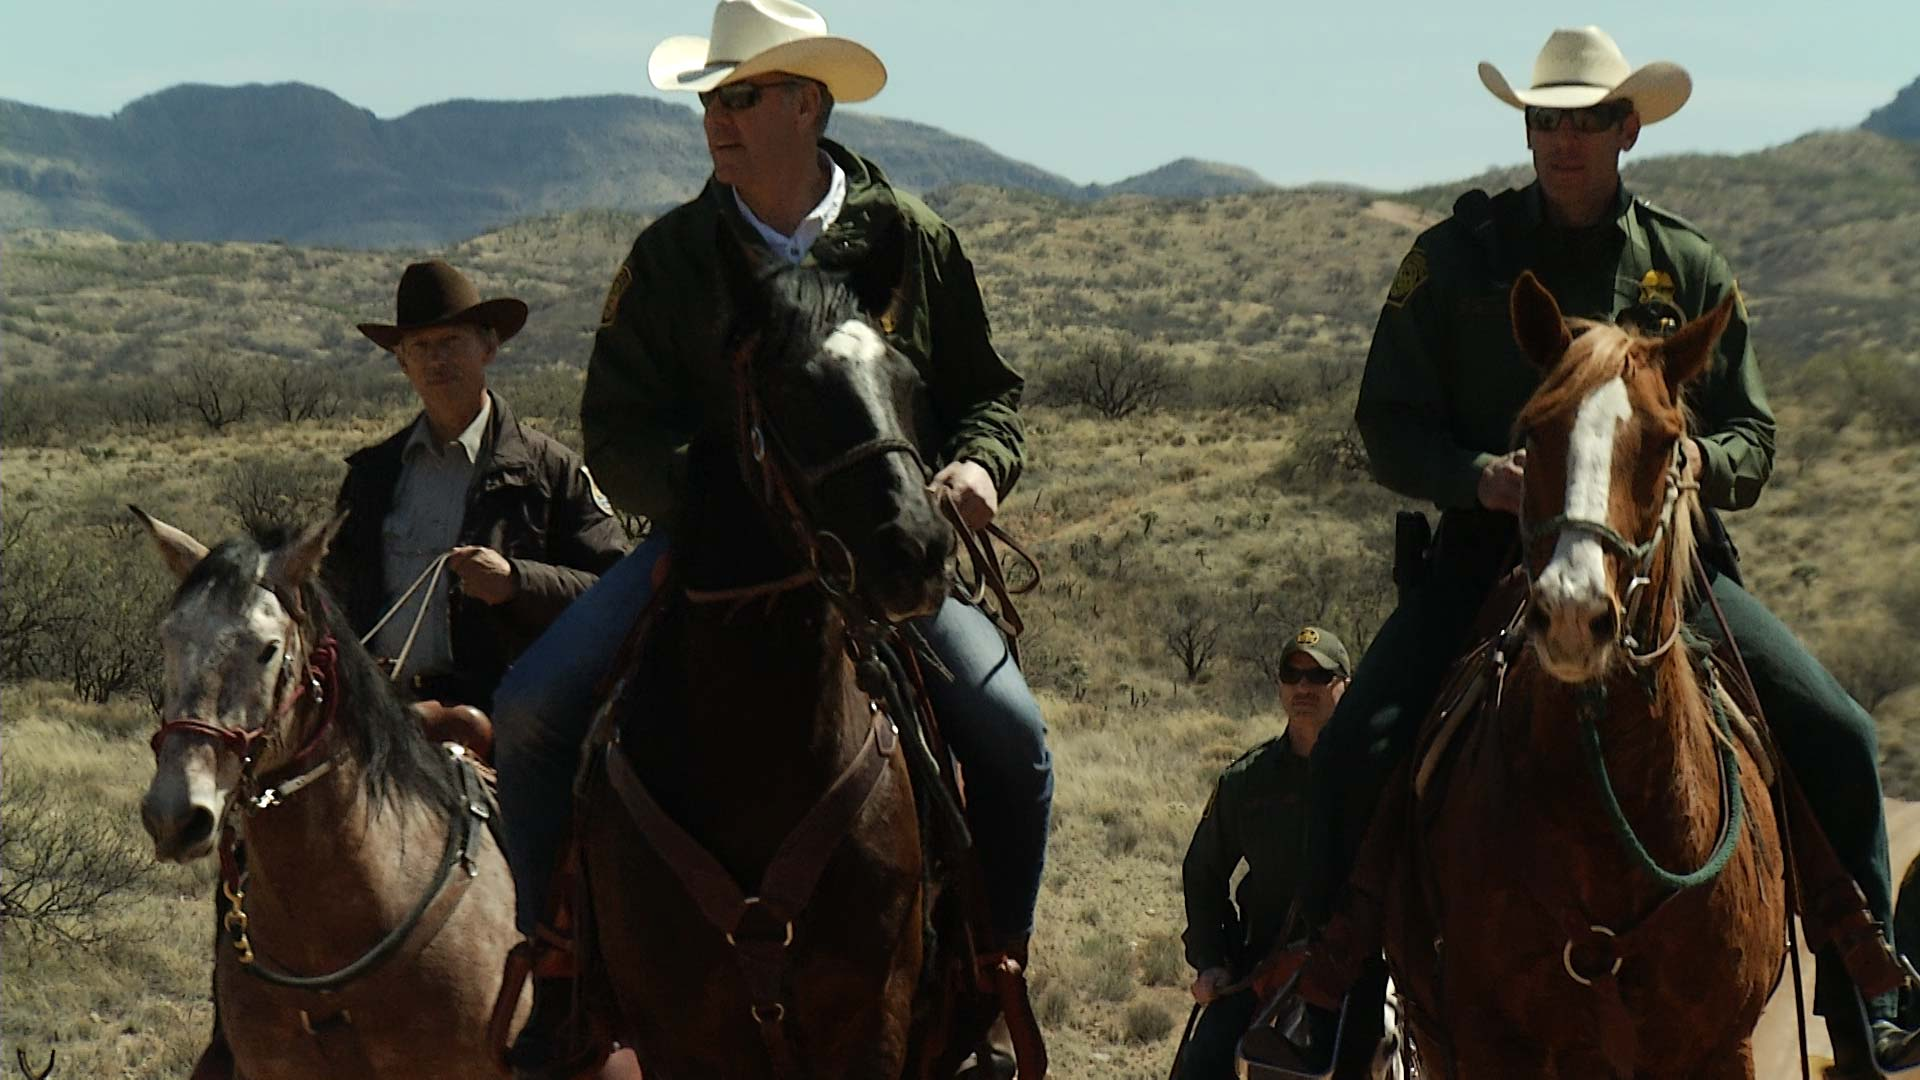 Inter Secretary Ryan Zinke tours the Arizona-Mexico border on horseback outside Sasabe, March 2018.